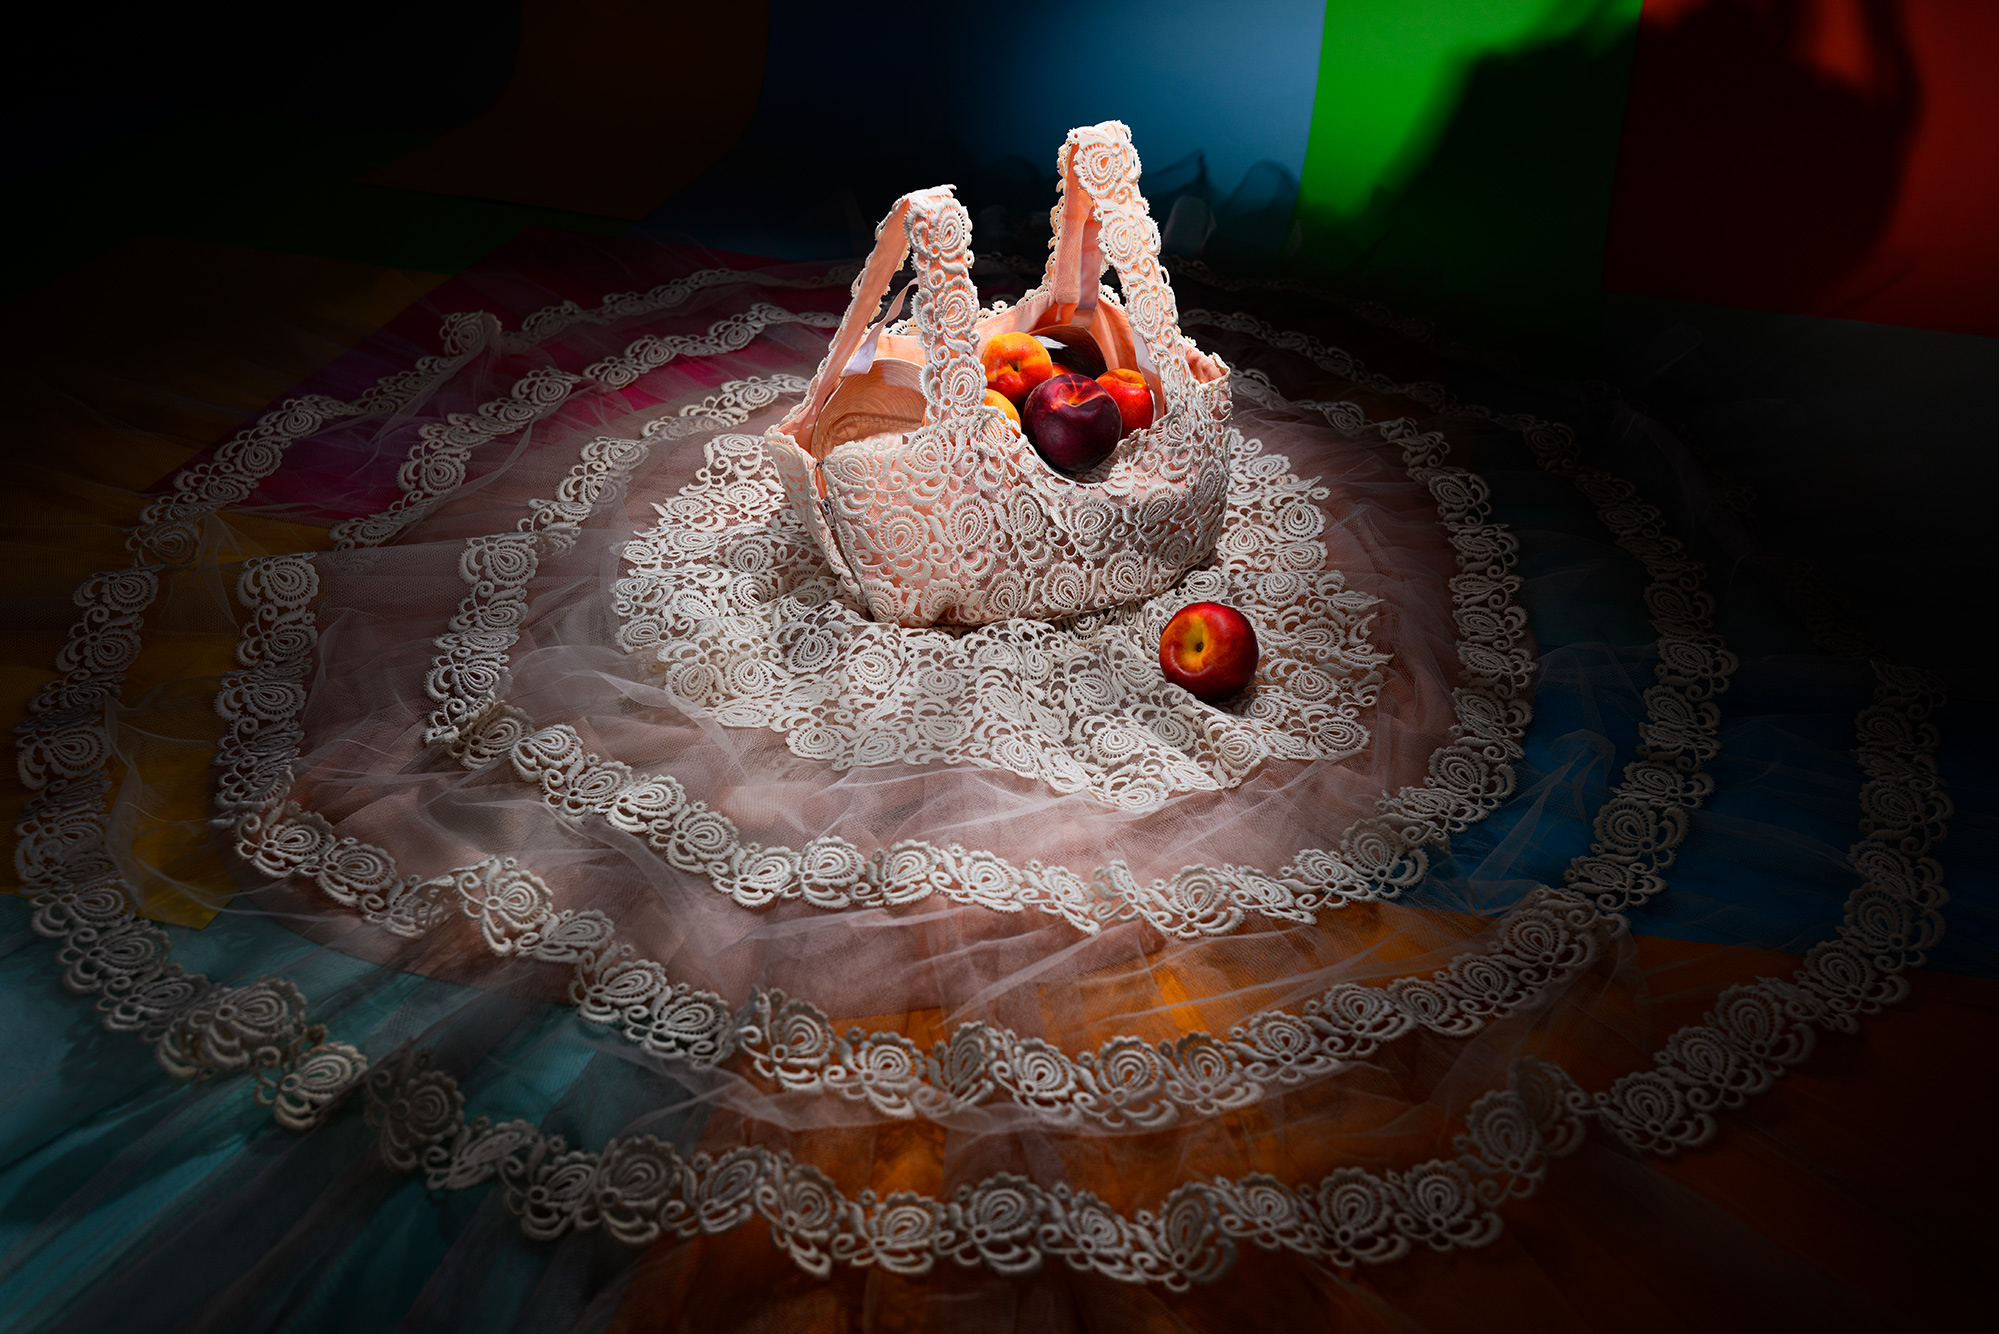 Fashion meets food. A laced dress from the 1950's is laied out on the floor and filled with peaches.